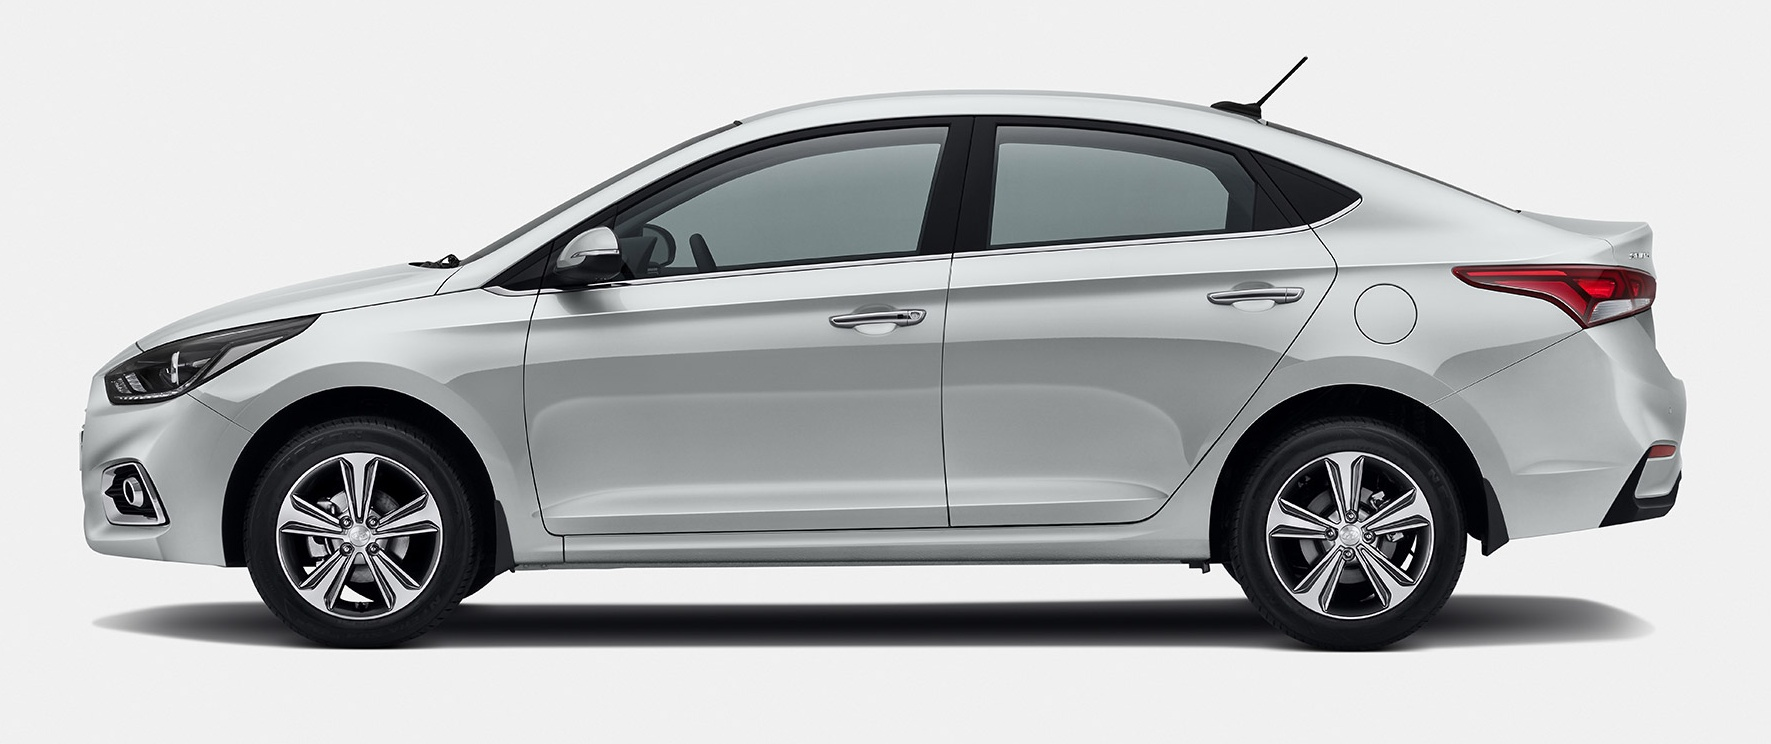 2018 hyundai accent white. interesting white 2018 hyundai accent teased to be unveiled feb 16 image 613919 inside hyundai accent white paul tan